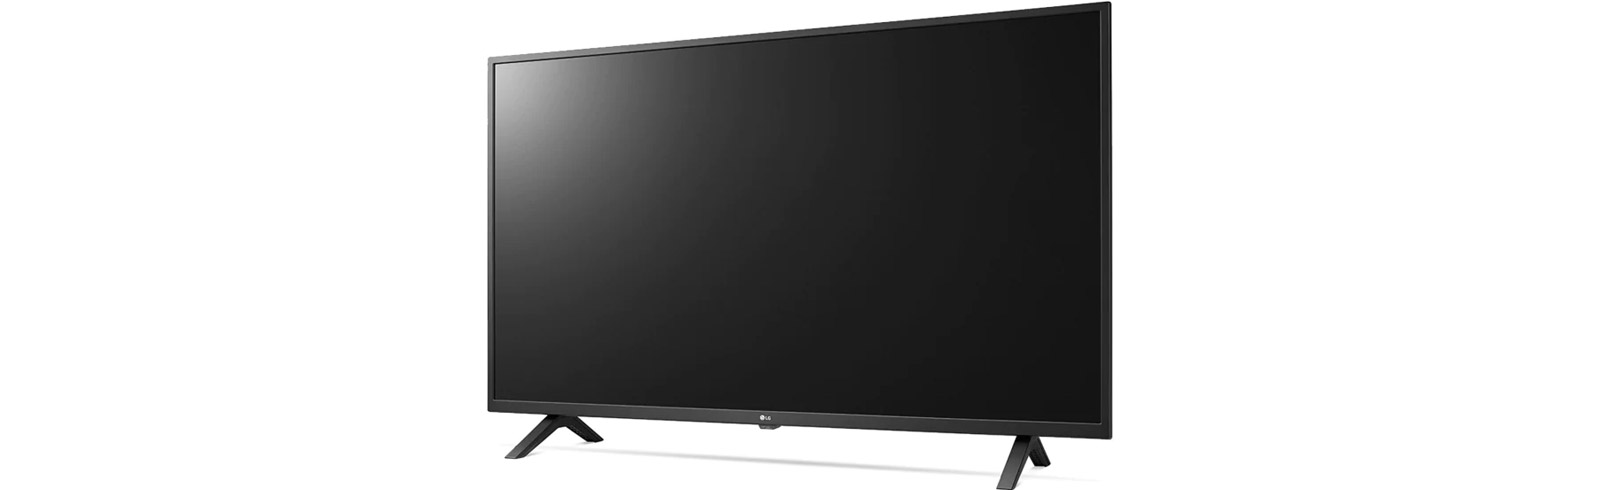 2021 LG 4K LCD TVs prices and availability in Europe